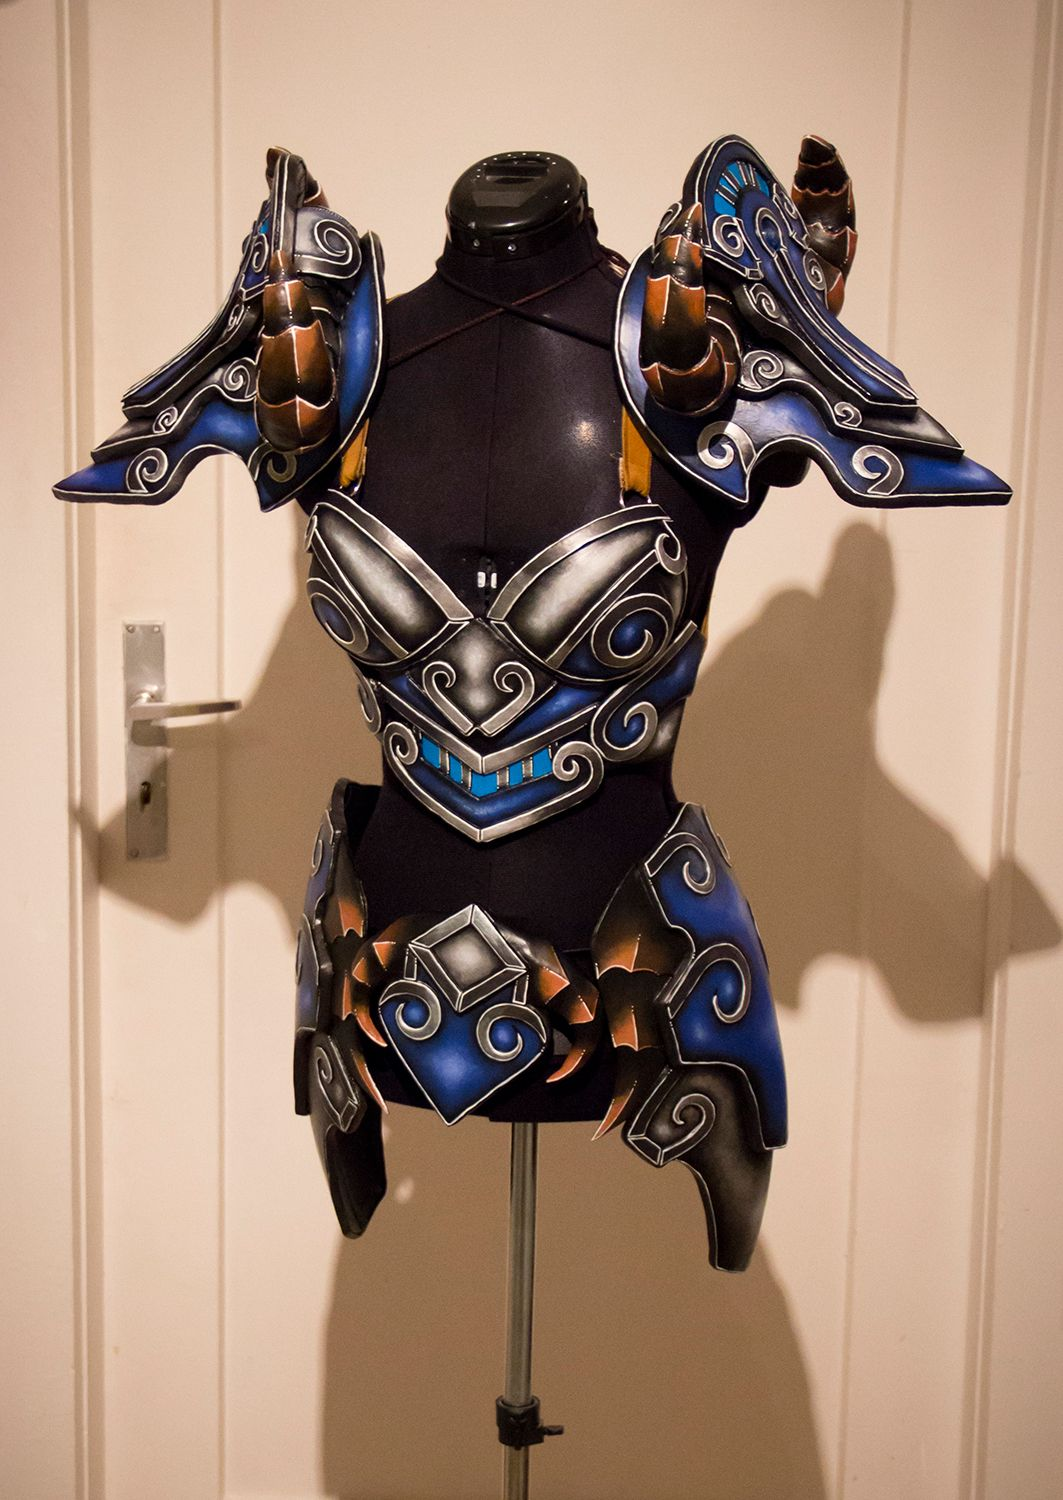 kamuicosplay: Do you also want to create ALL THE ARMOR? I ...